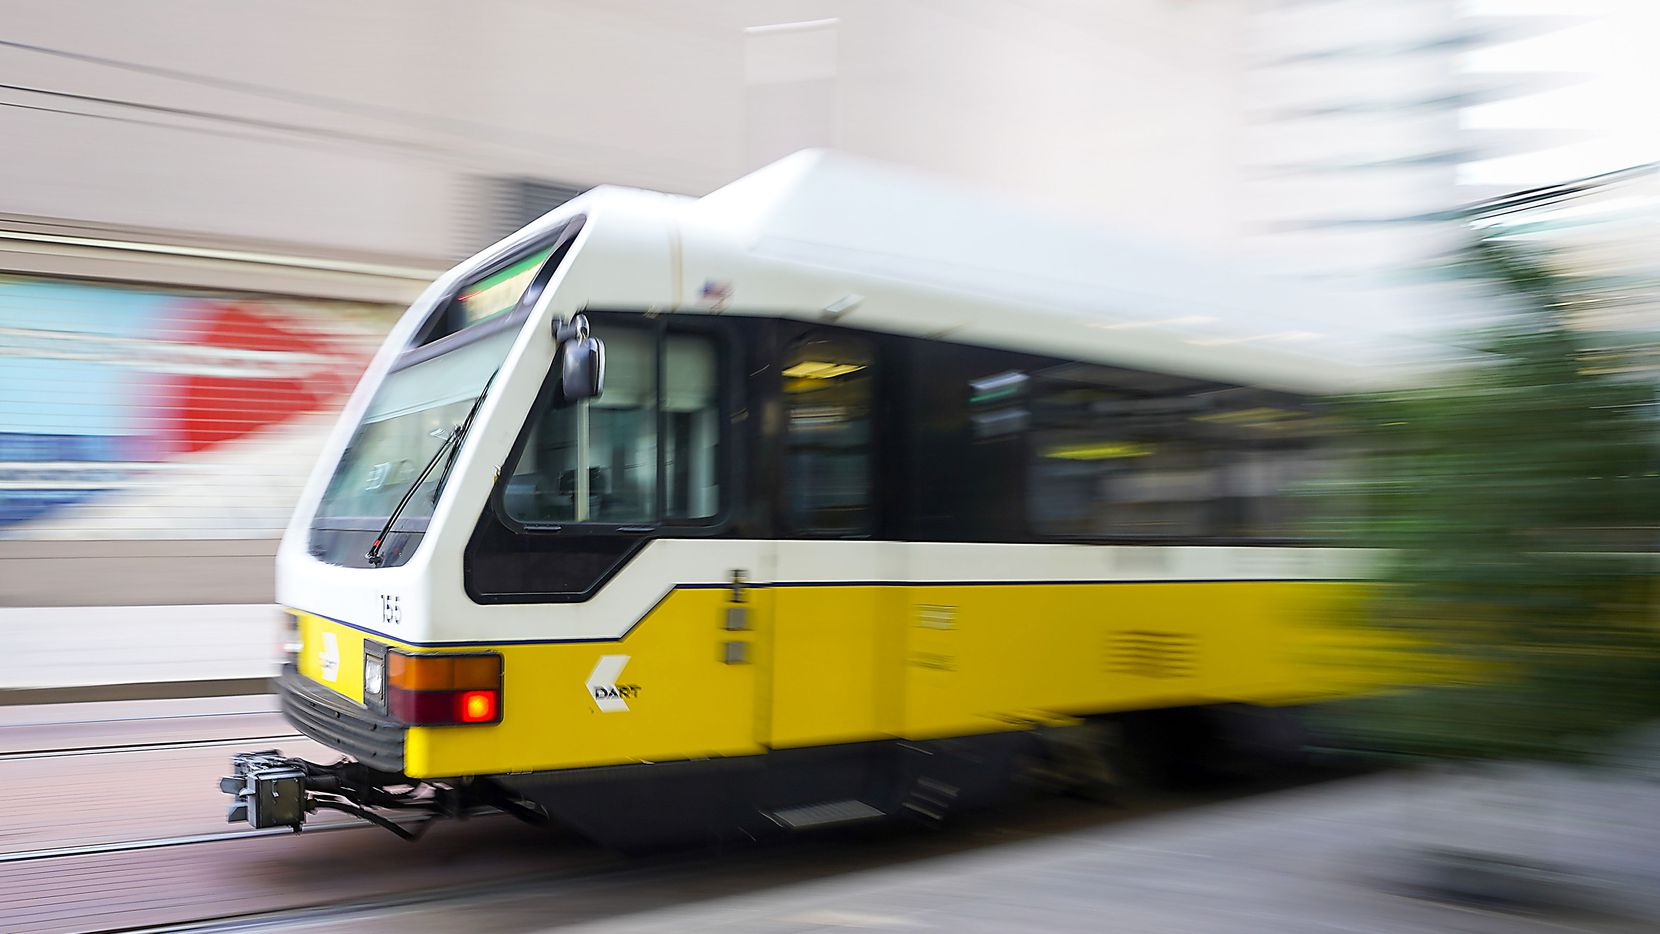 A DART rail train pulls into St. Paul Station downtown on Thursday, Aug. 13, 2020, in Dallas.